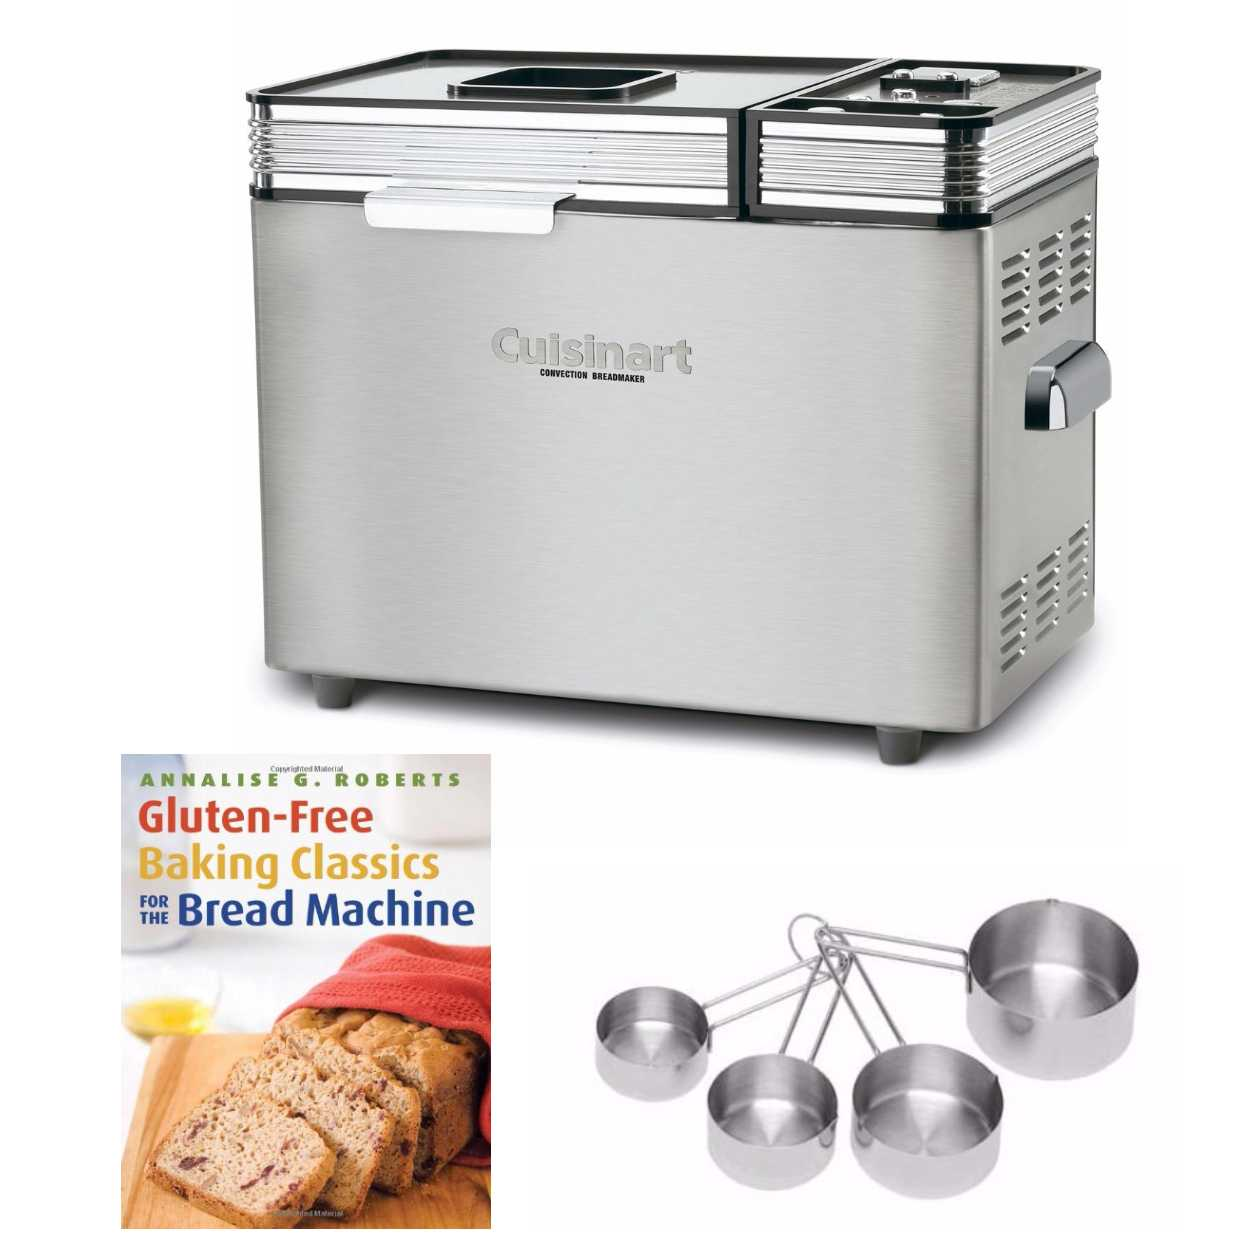 Cuisinart 2 lb. Bread Maker with Gluten-Free Cookbook and 4-Piece Measuring Cup (Refurbished)